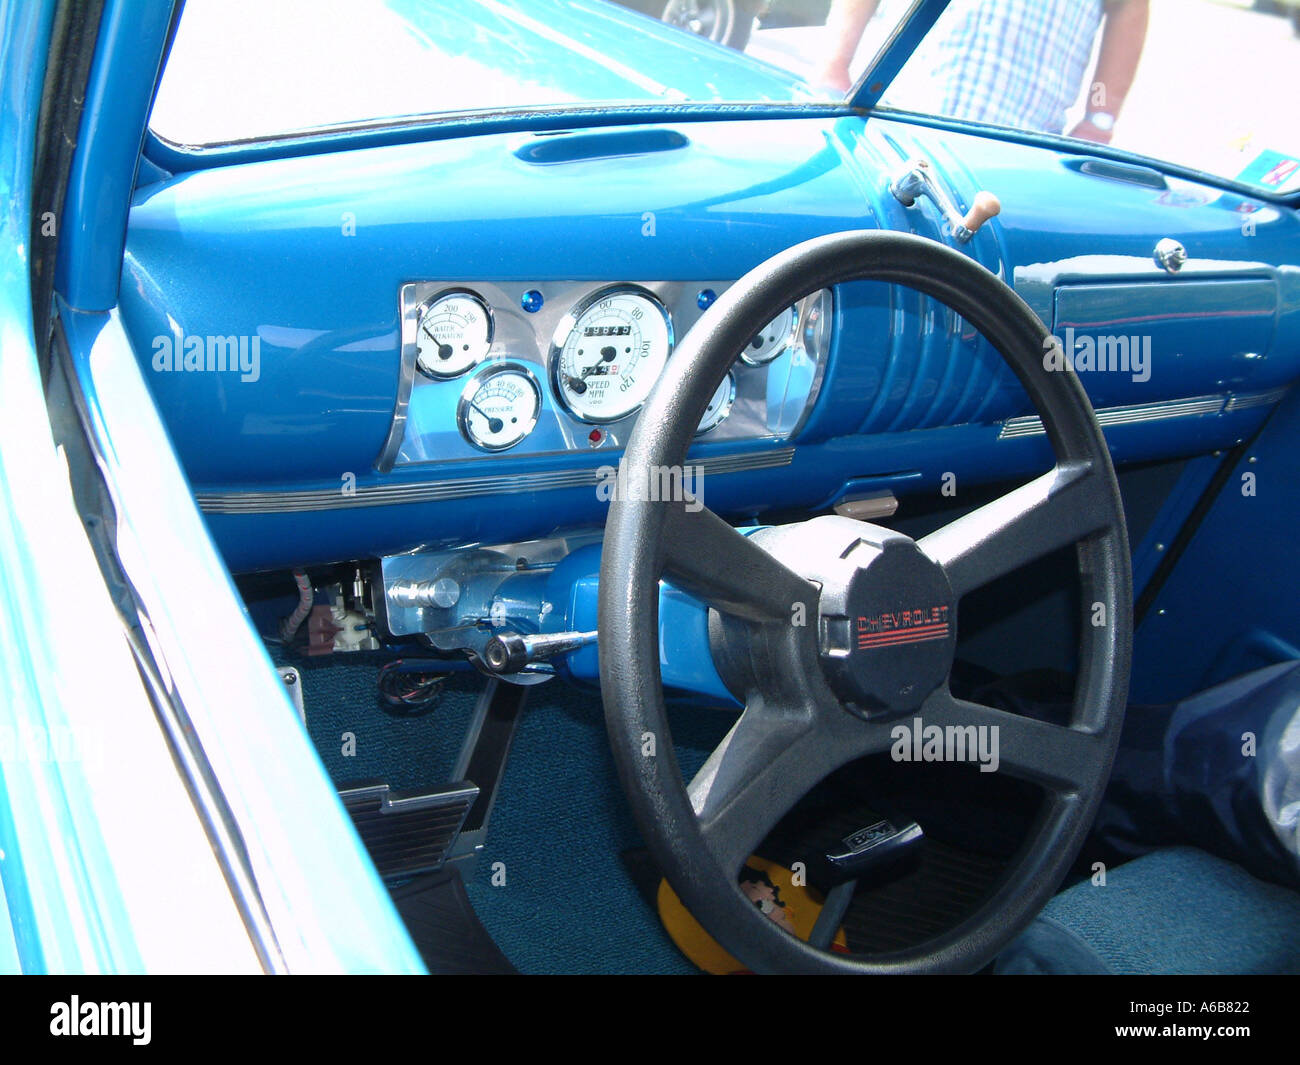 1941 chevrolet pickup truck interior blue paint stock photo royalty free image 440354 alamy. Black Bedroom Furniture Sets. Home Design Ideas